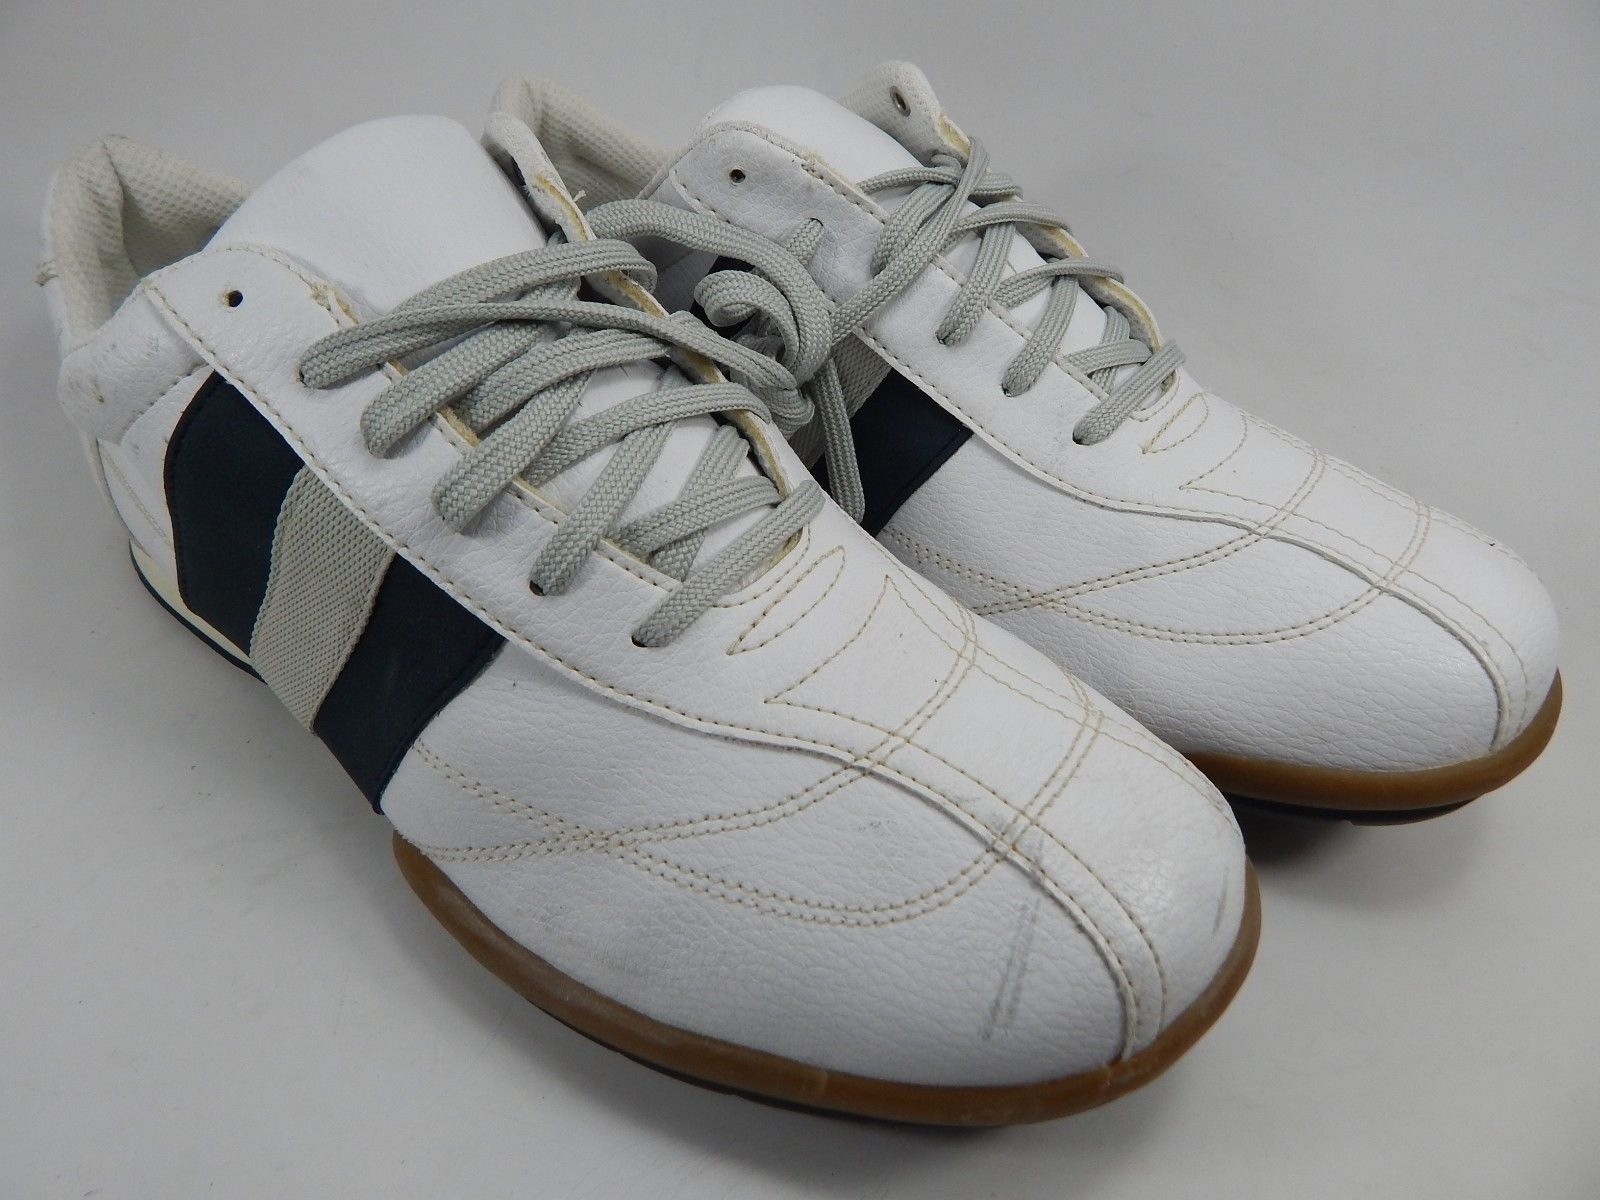 State Street Men's Athletic Sneakers Shoes Size US 8 M (D) EU 40.5 White